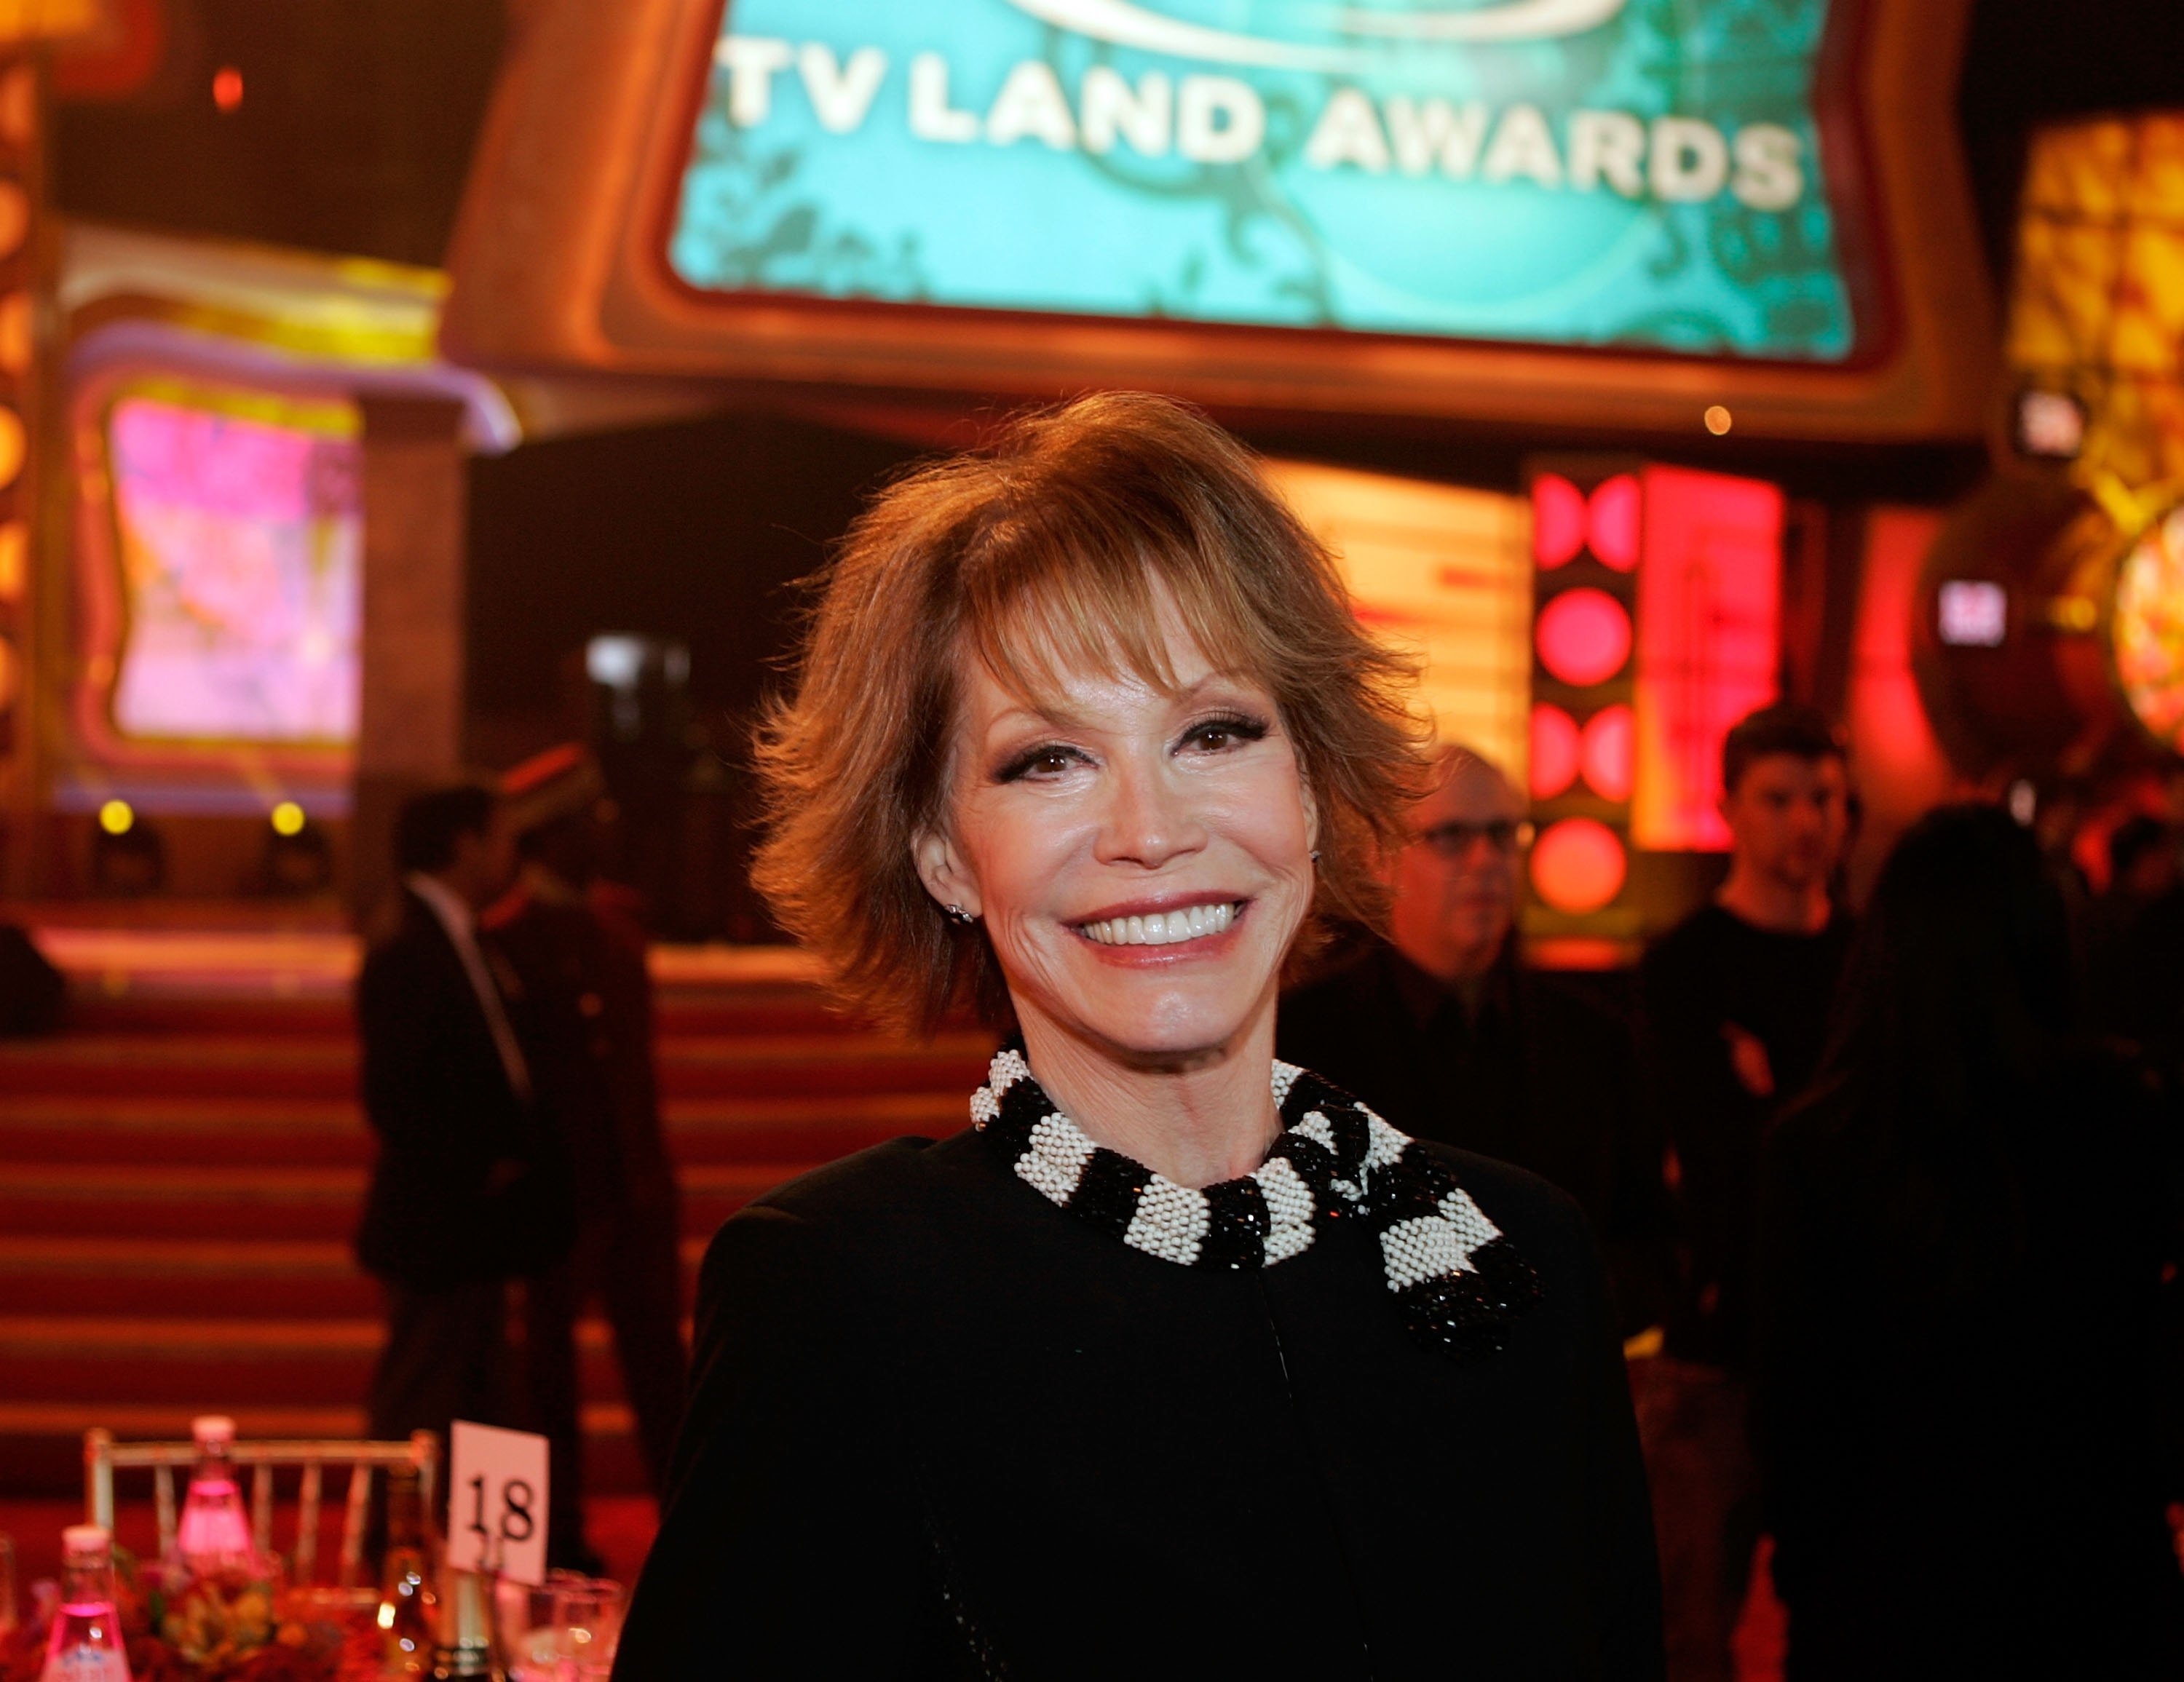 Mary Tyler Moore on March 19, 2006 in Santa Monica, California | Photo: Getty Images/Global Images Ukraine